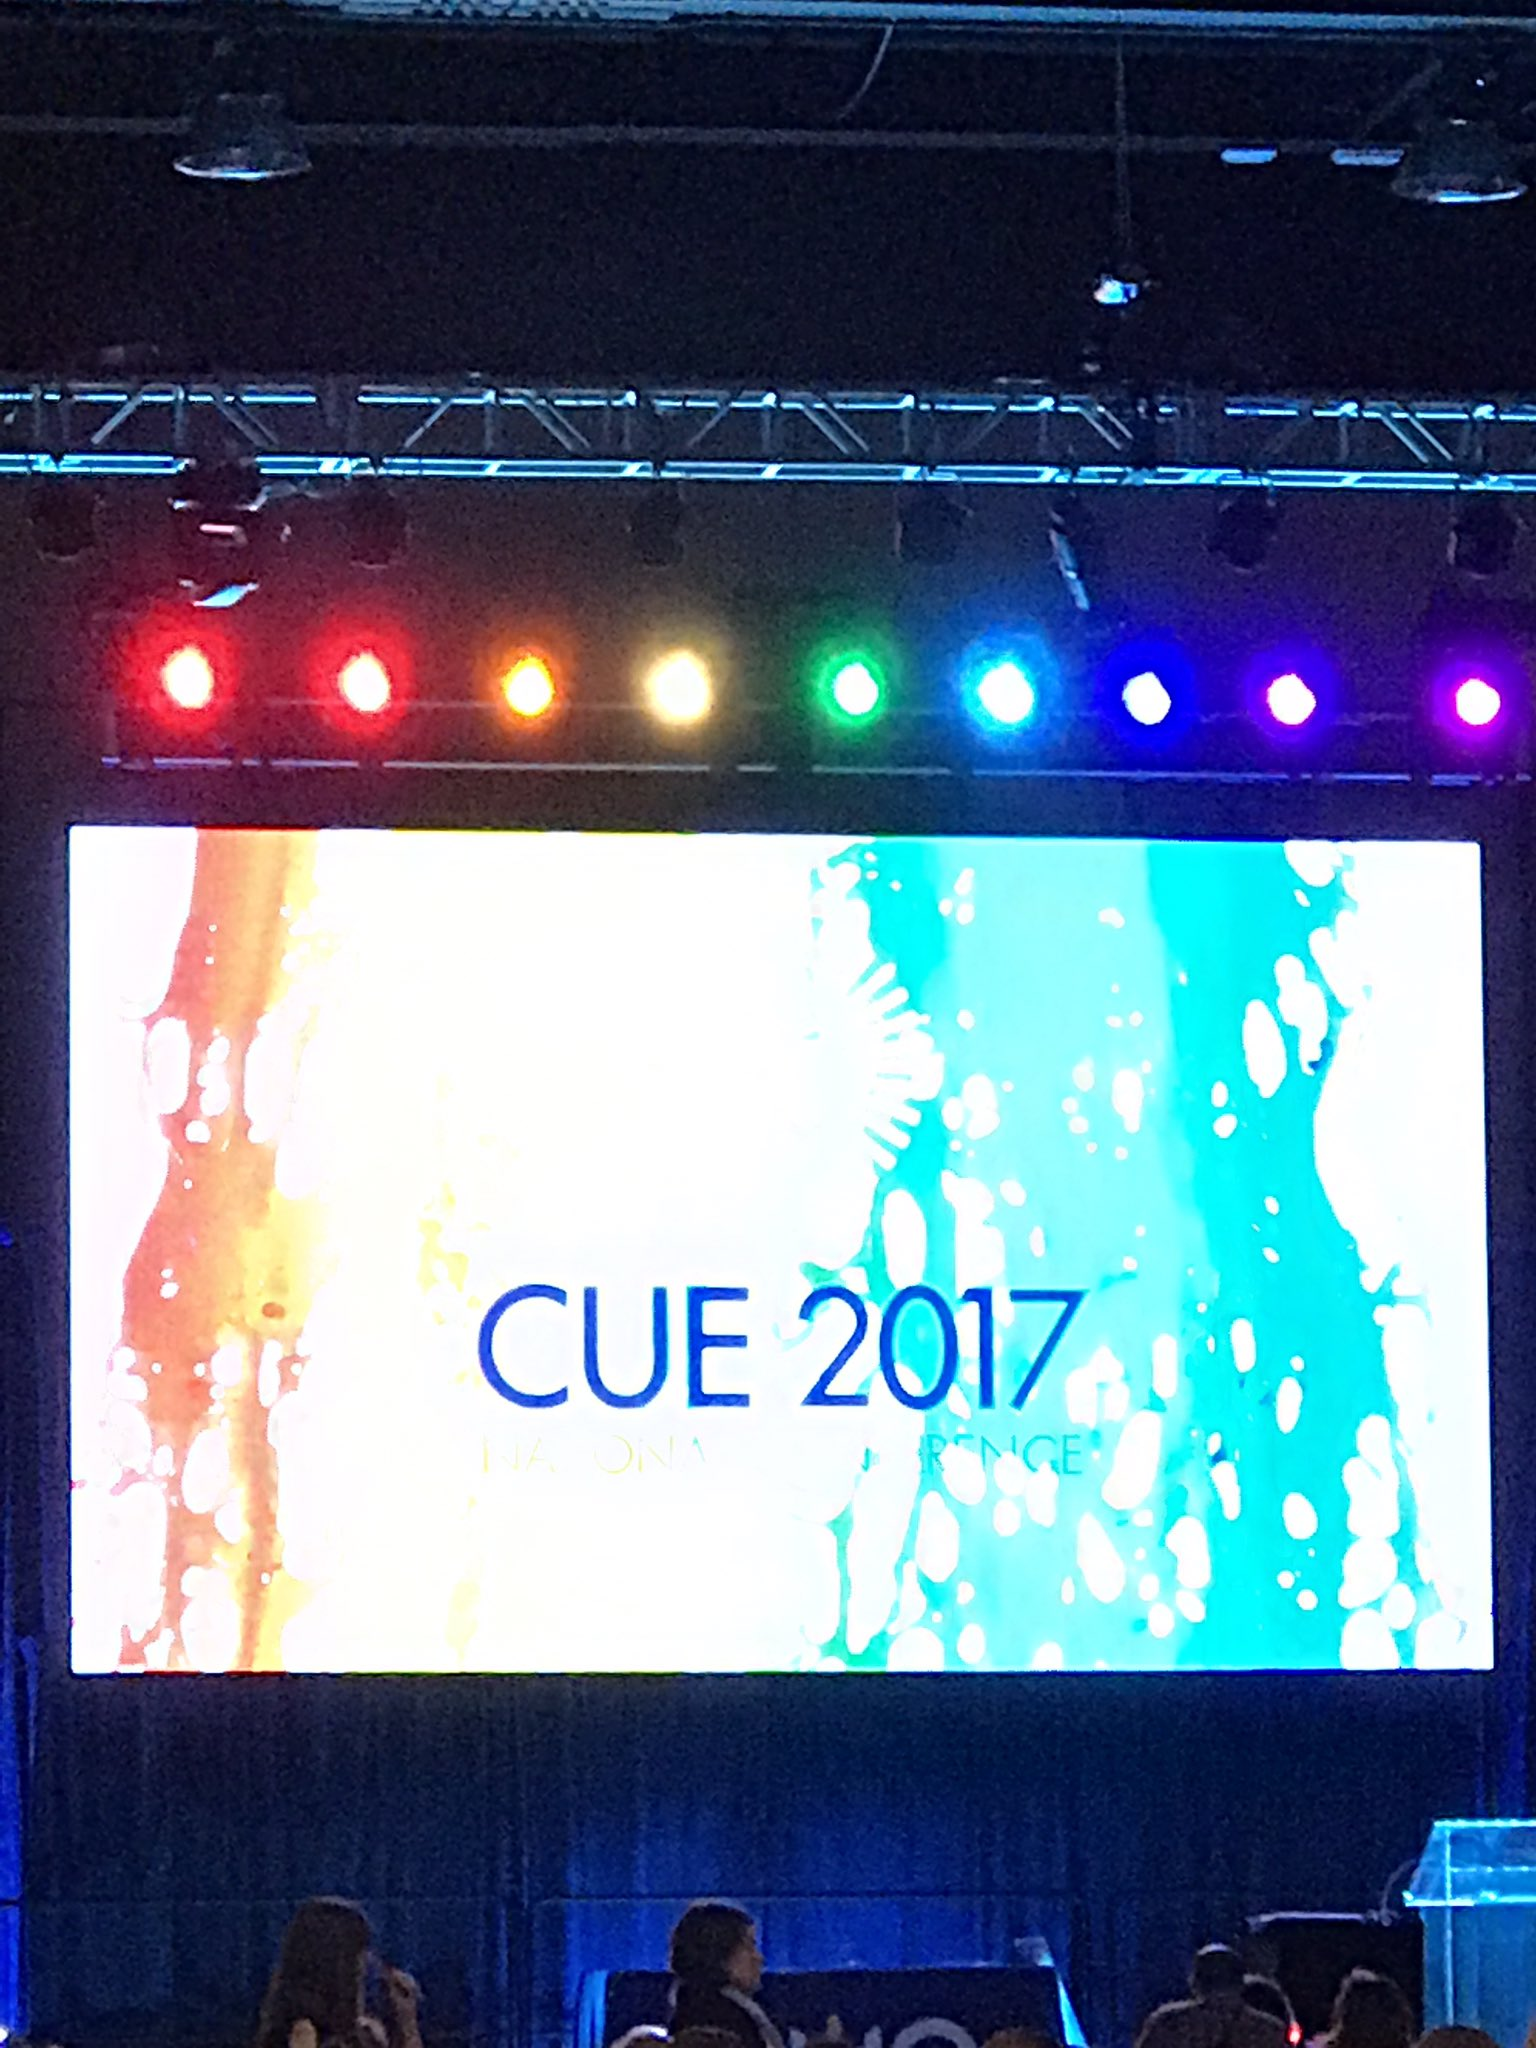 Waiting for the closing keynote by @art_cathyhunt. What a great end to the  #cue17 conference. https://t.co/xLhBiKBDa6